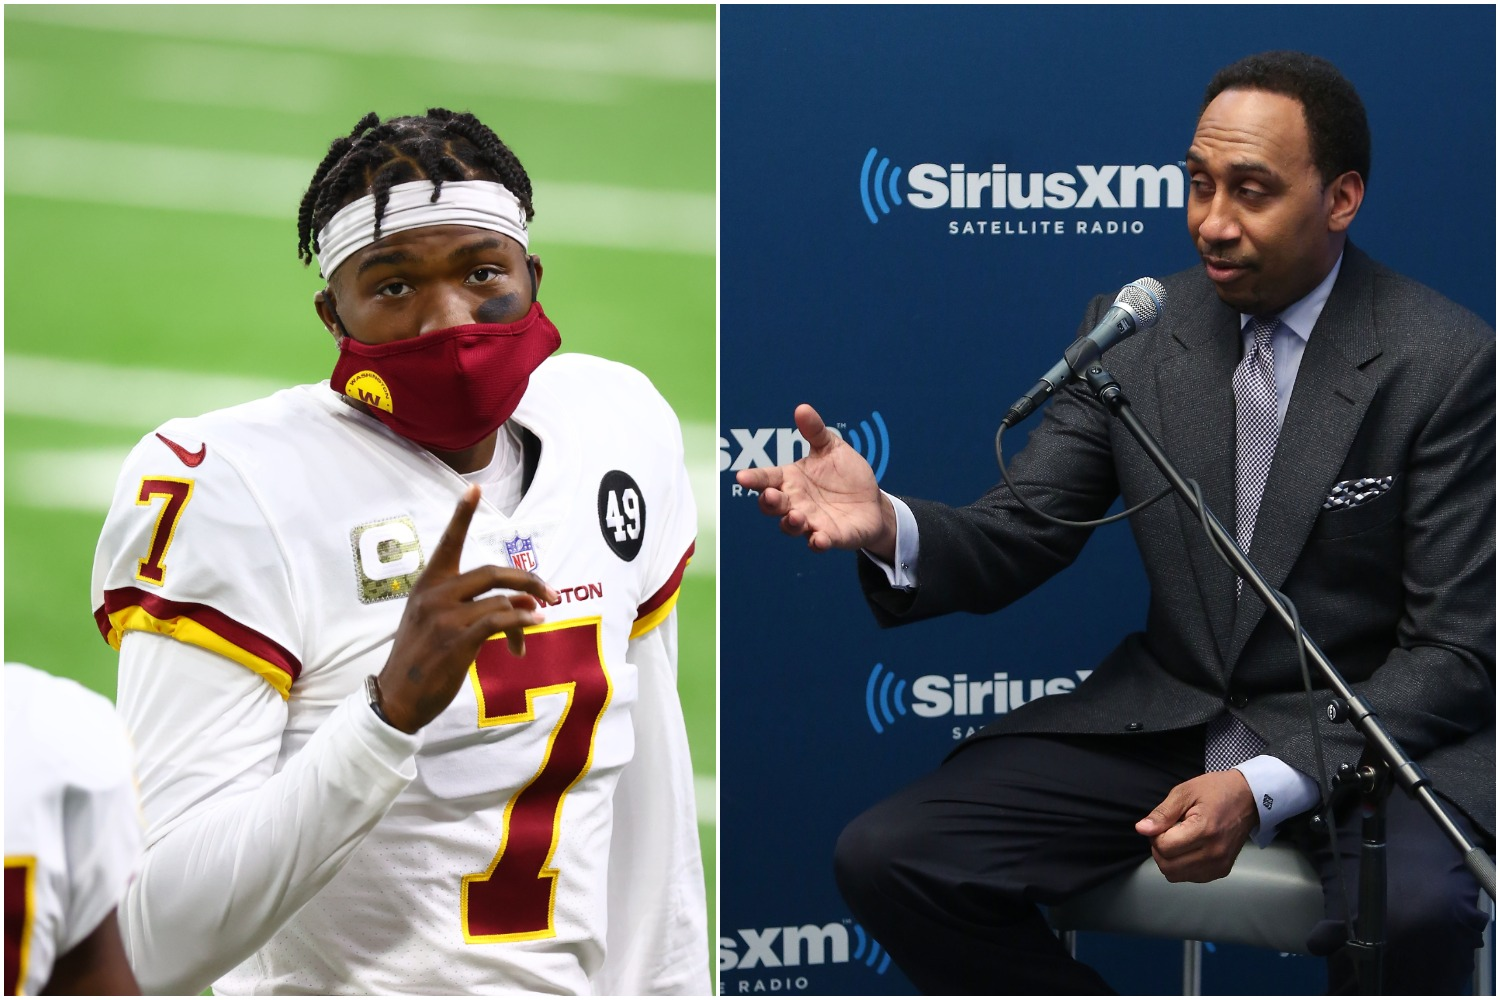 Even though he's on vacation, Stephen A. Smith took to Twitter on Monday afternoon to put former Washington QB Dwayne Haskins on blast.